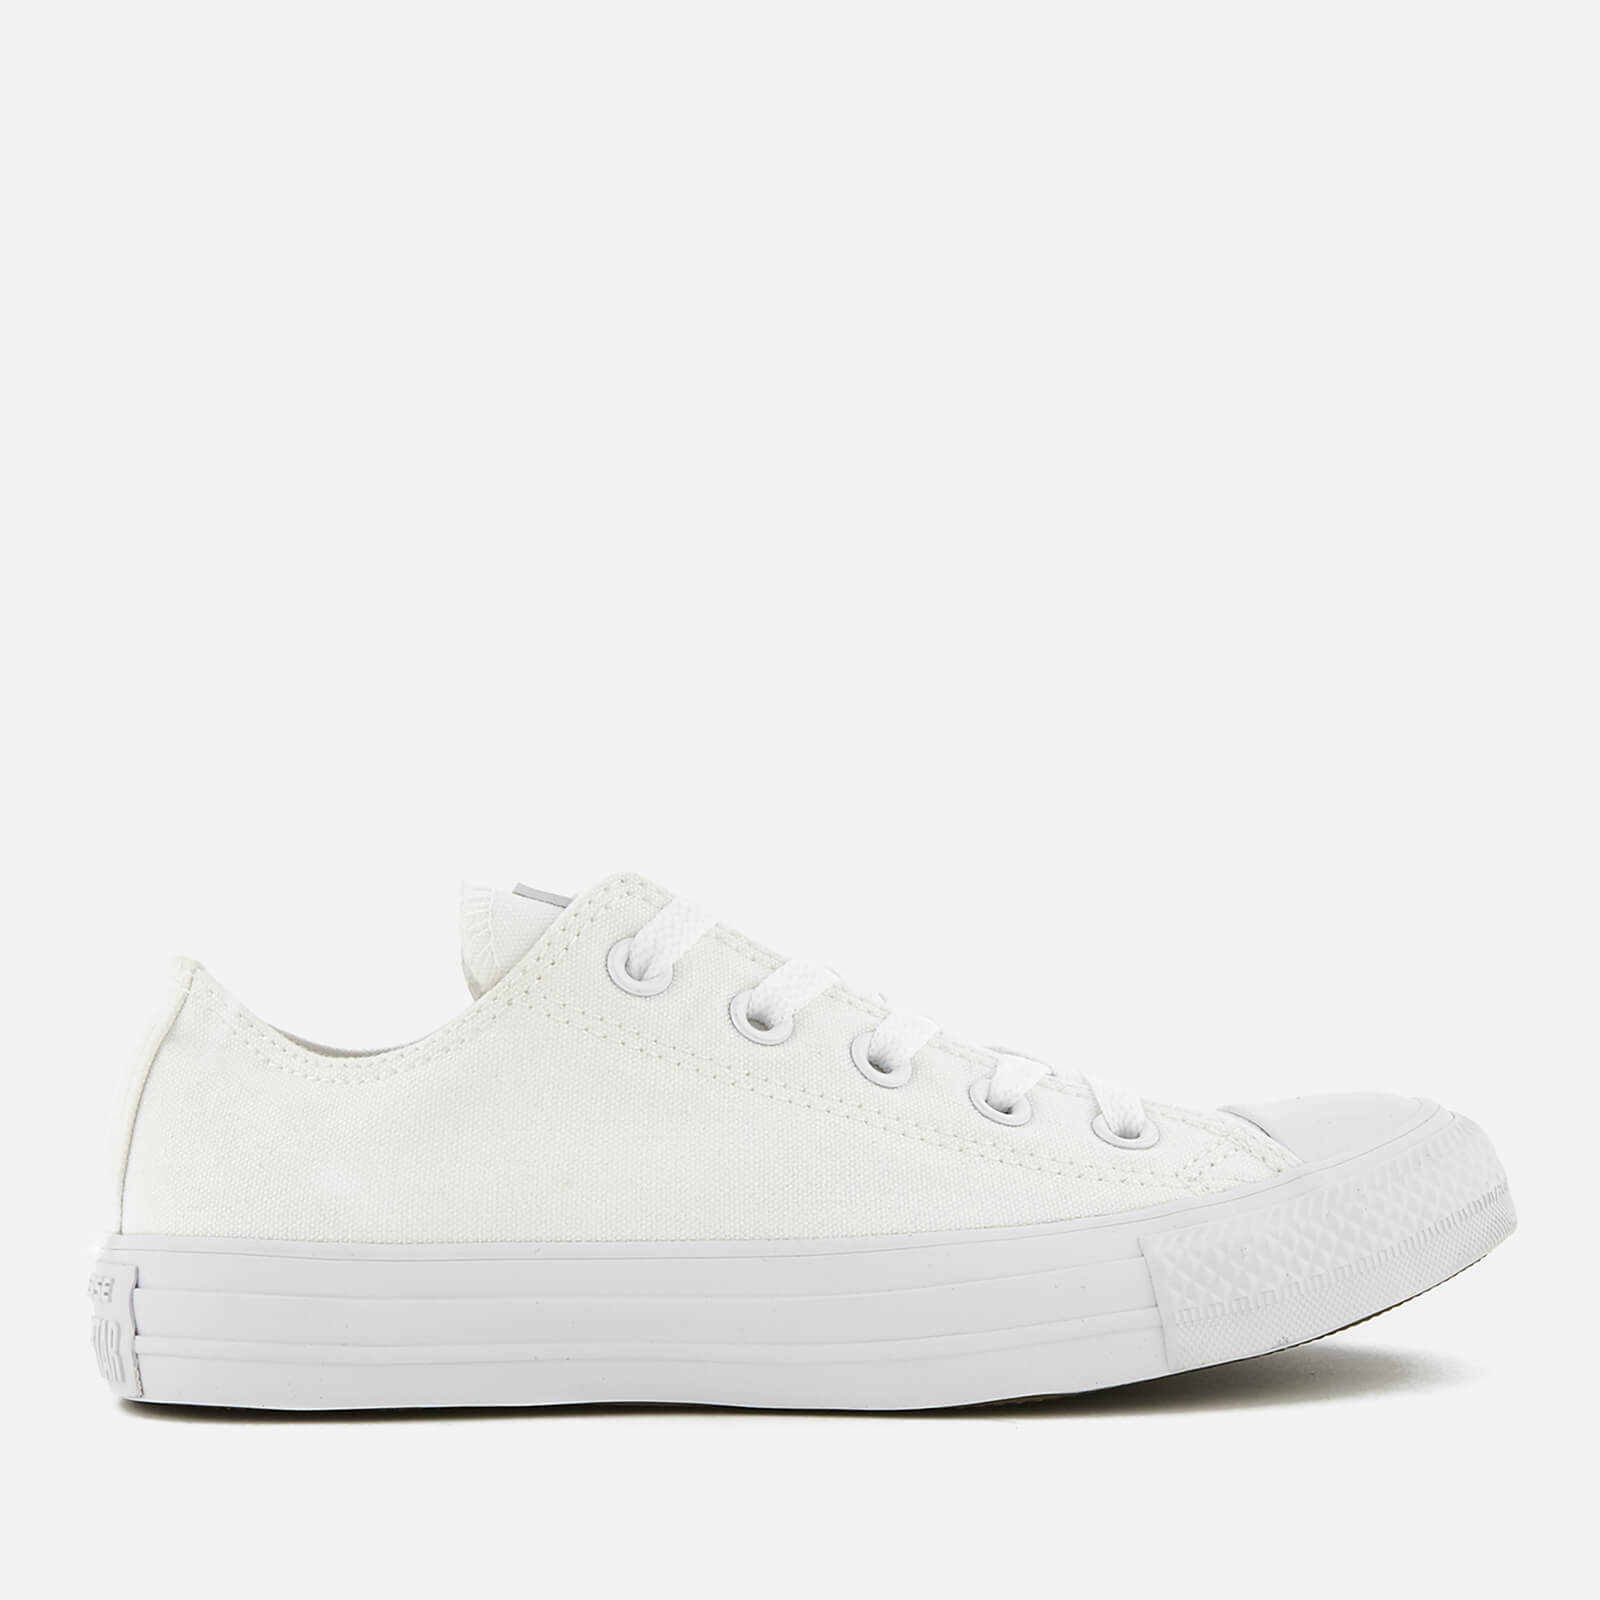 fc0d4e1ec98b24 Converse Chuck Taylor All Star Ox Canvas Trainers - White Monochrome Mens  Footwear